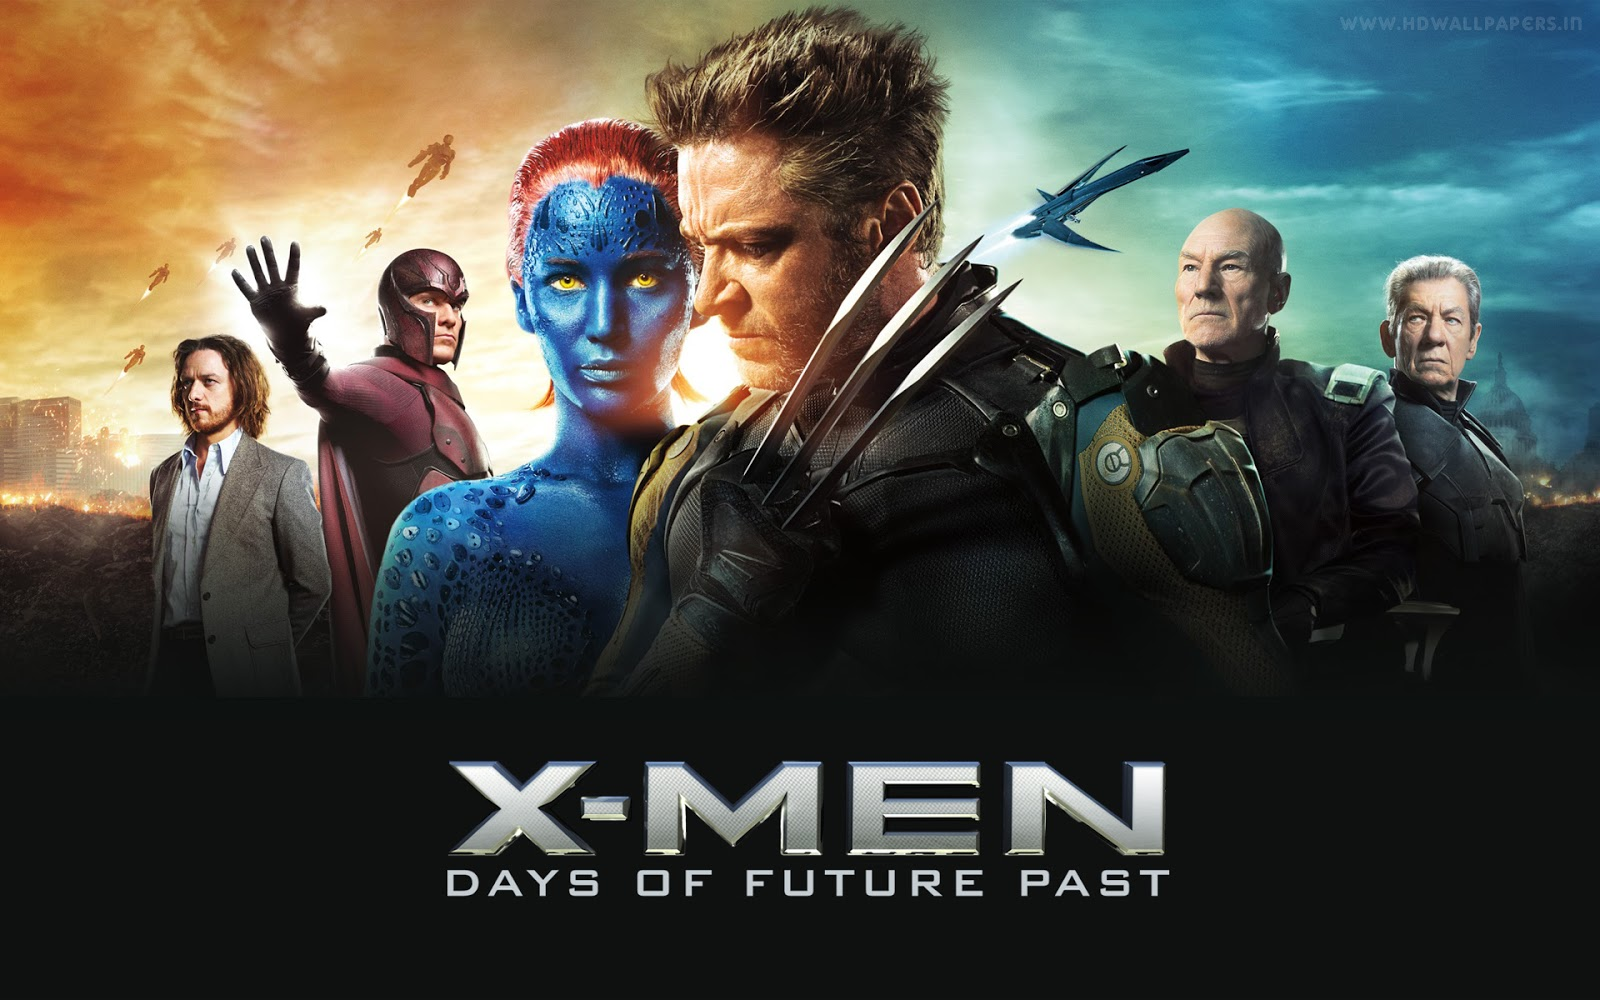 X Men Days Of Future Past Official Trailer Hd Full Movie For You